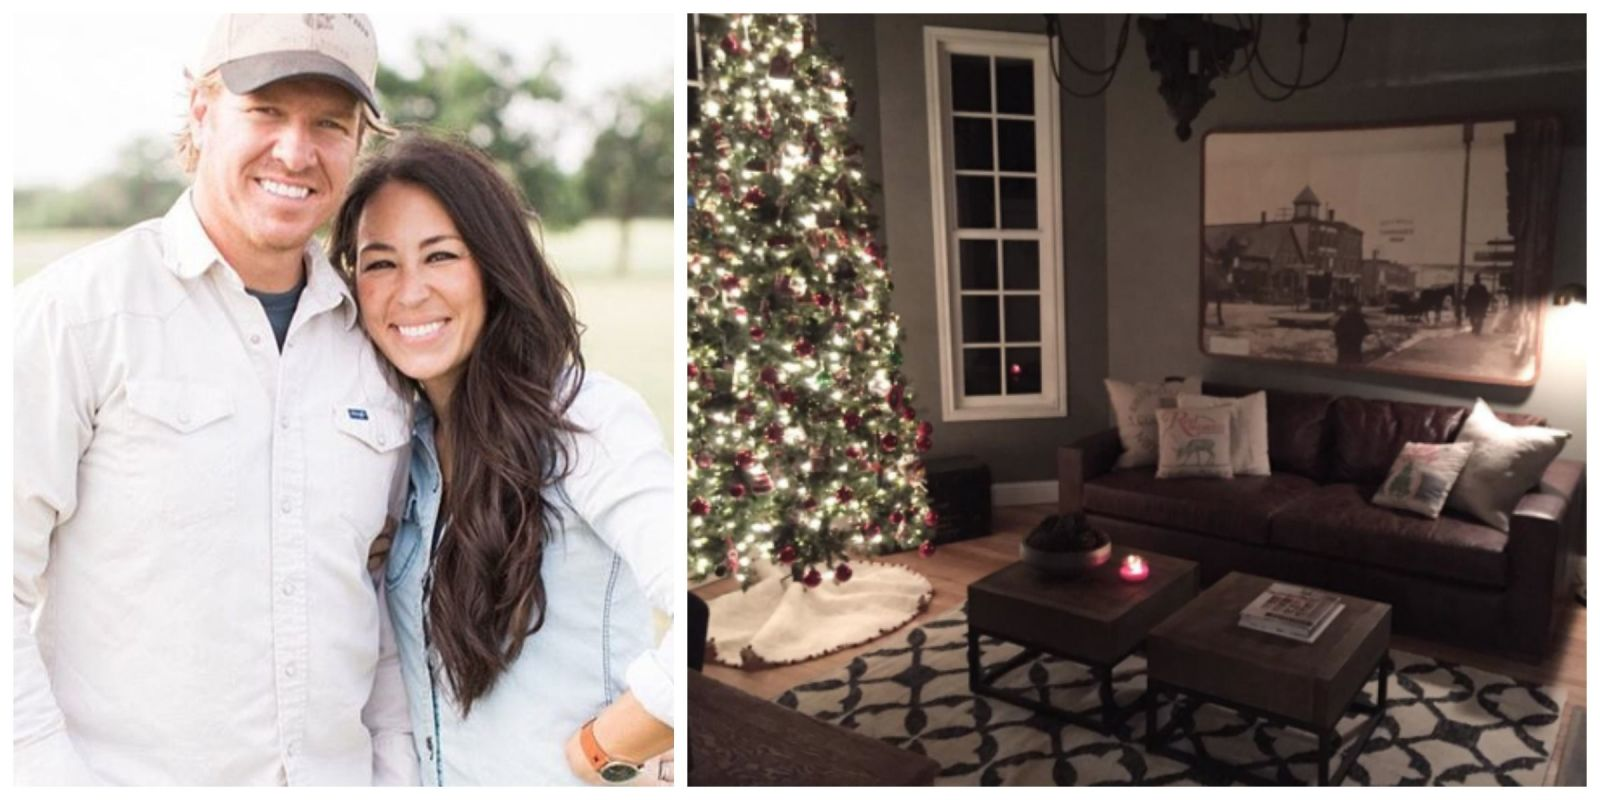 1000 images about chip and joanna gaines on pinterest for Does the furniture stay on fixer upper